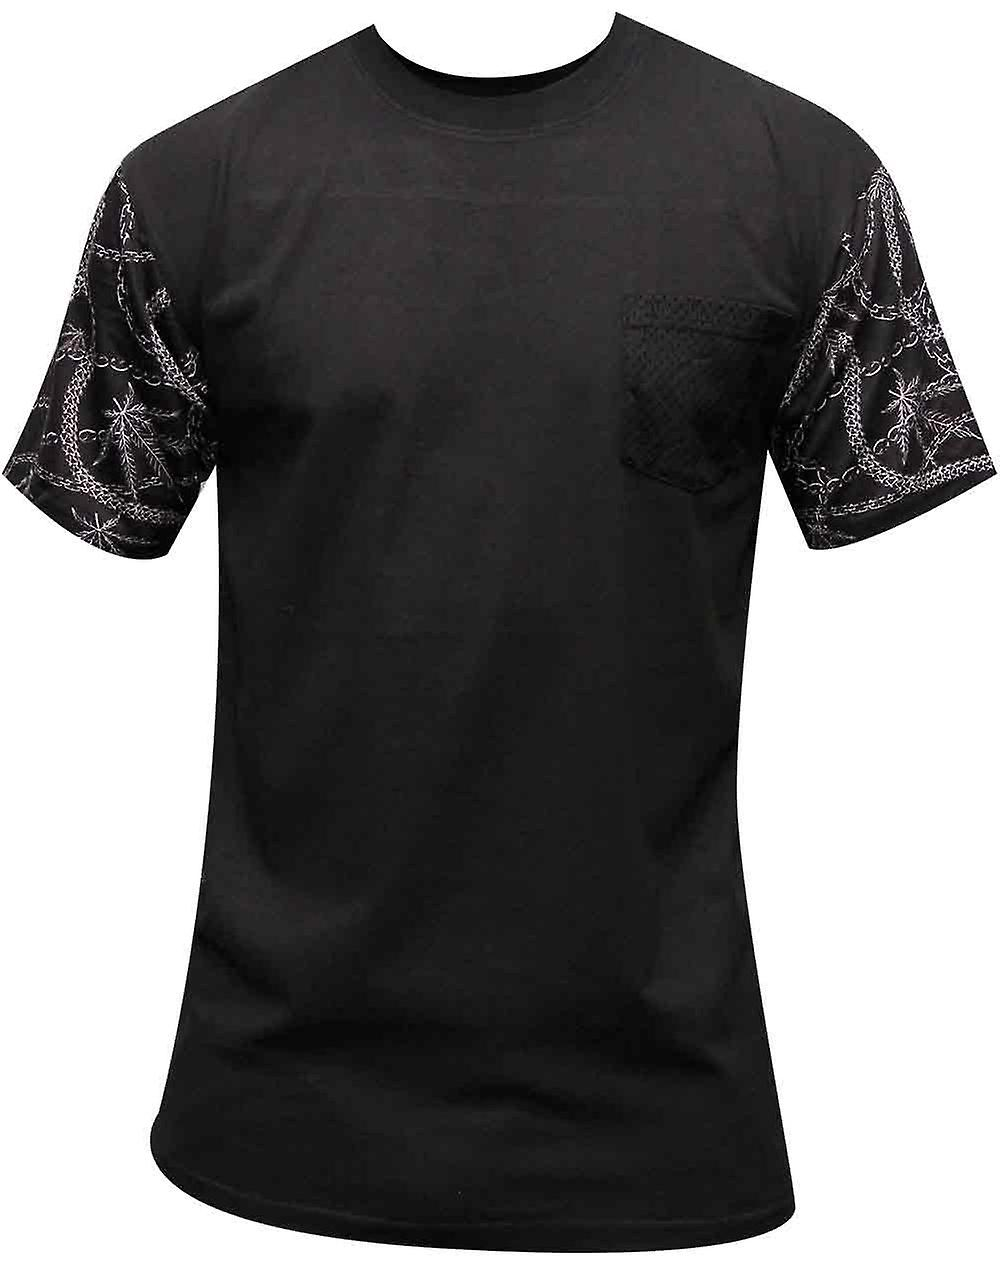 Crooks & Castles Chainleaf Pocket T-shirt Black Multi